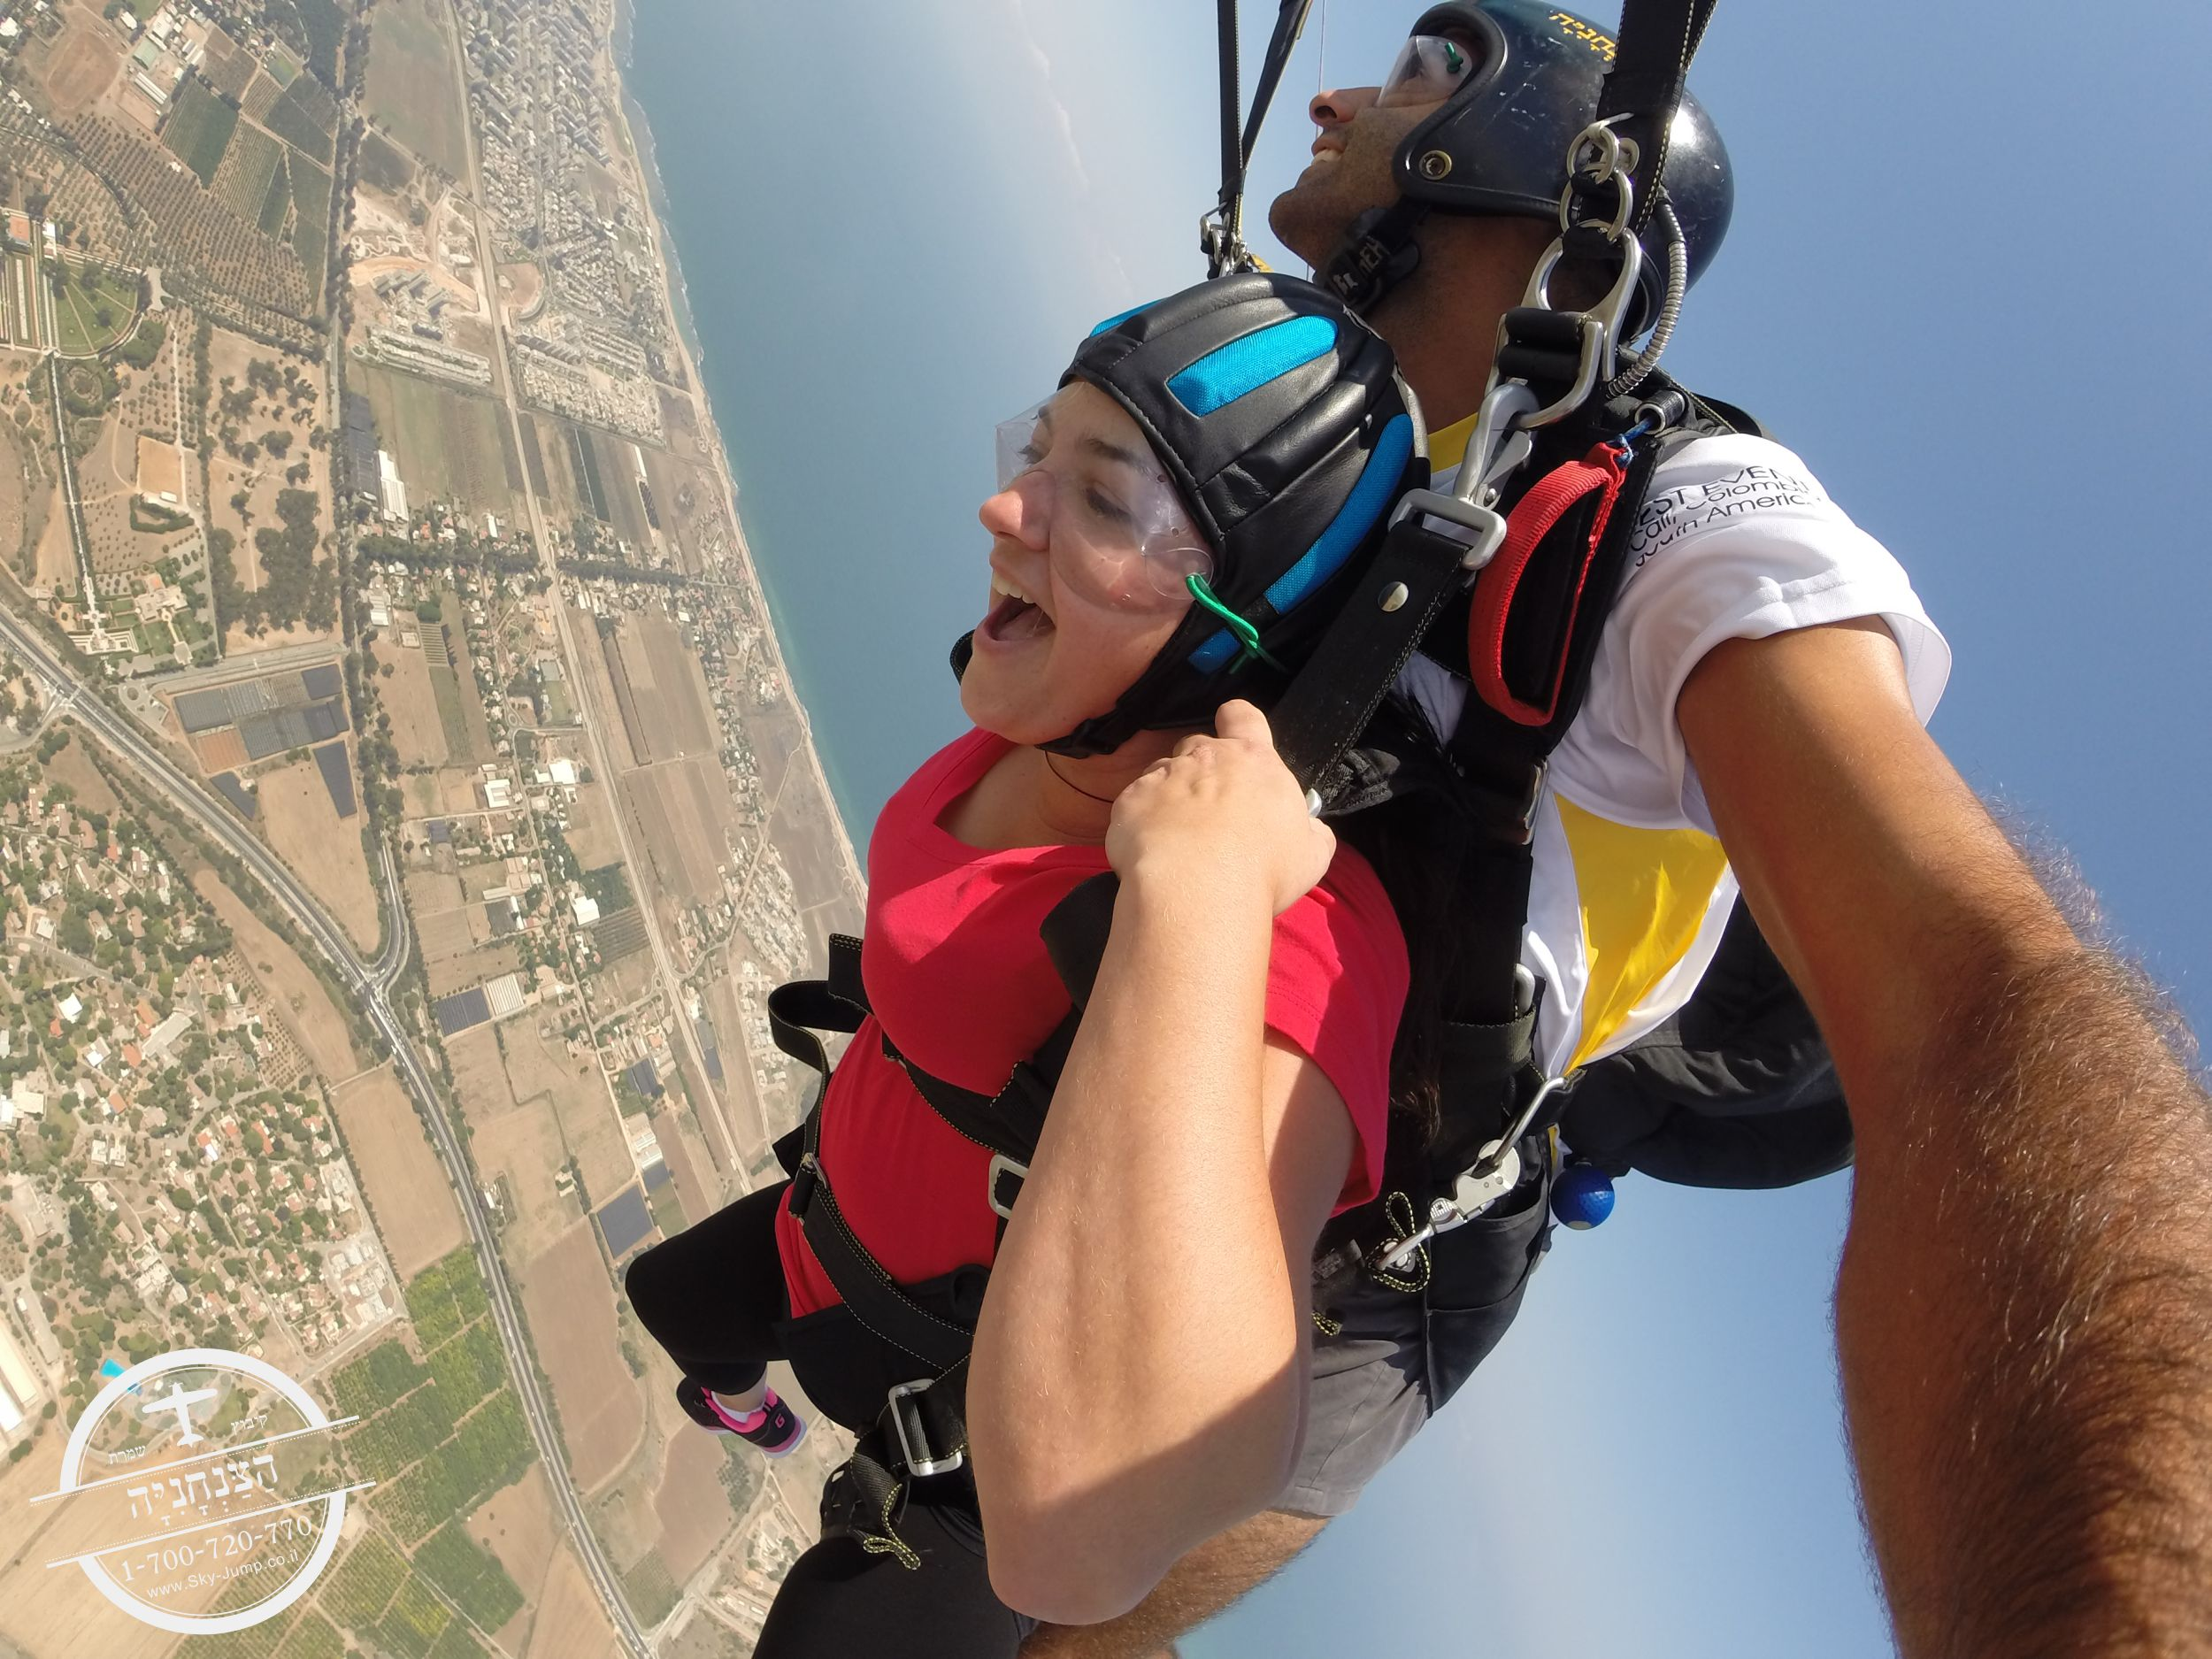 Skydive over israel